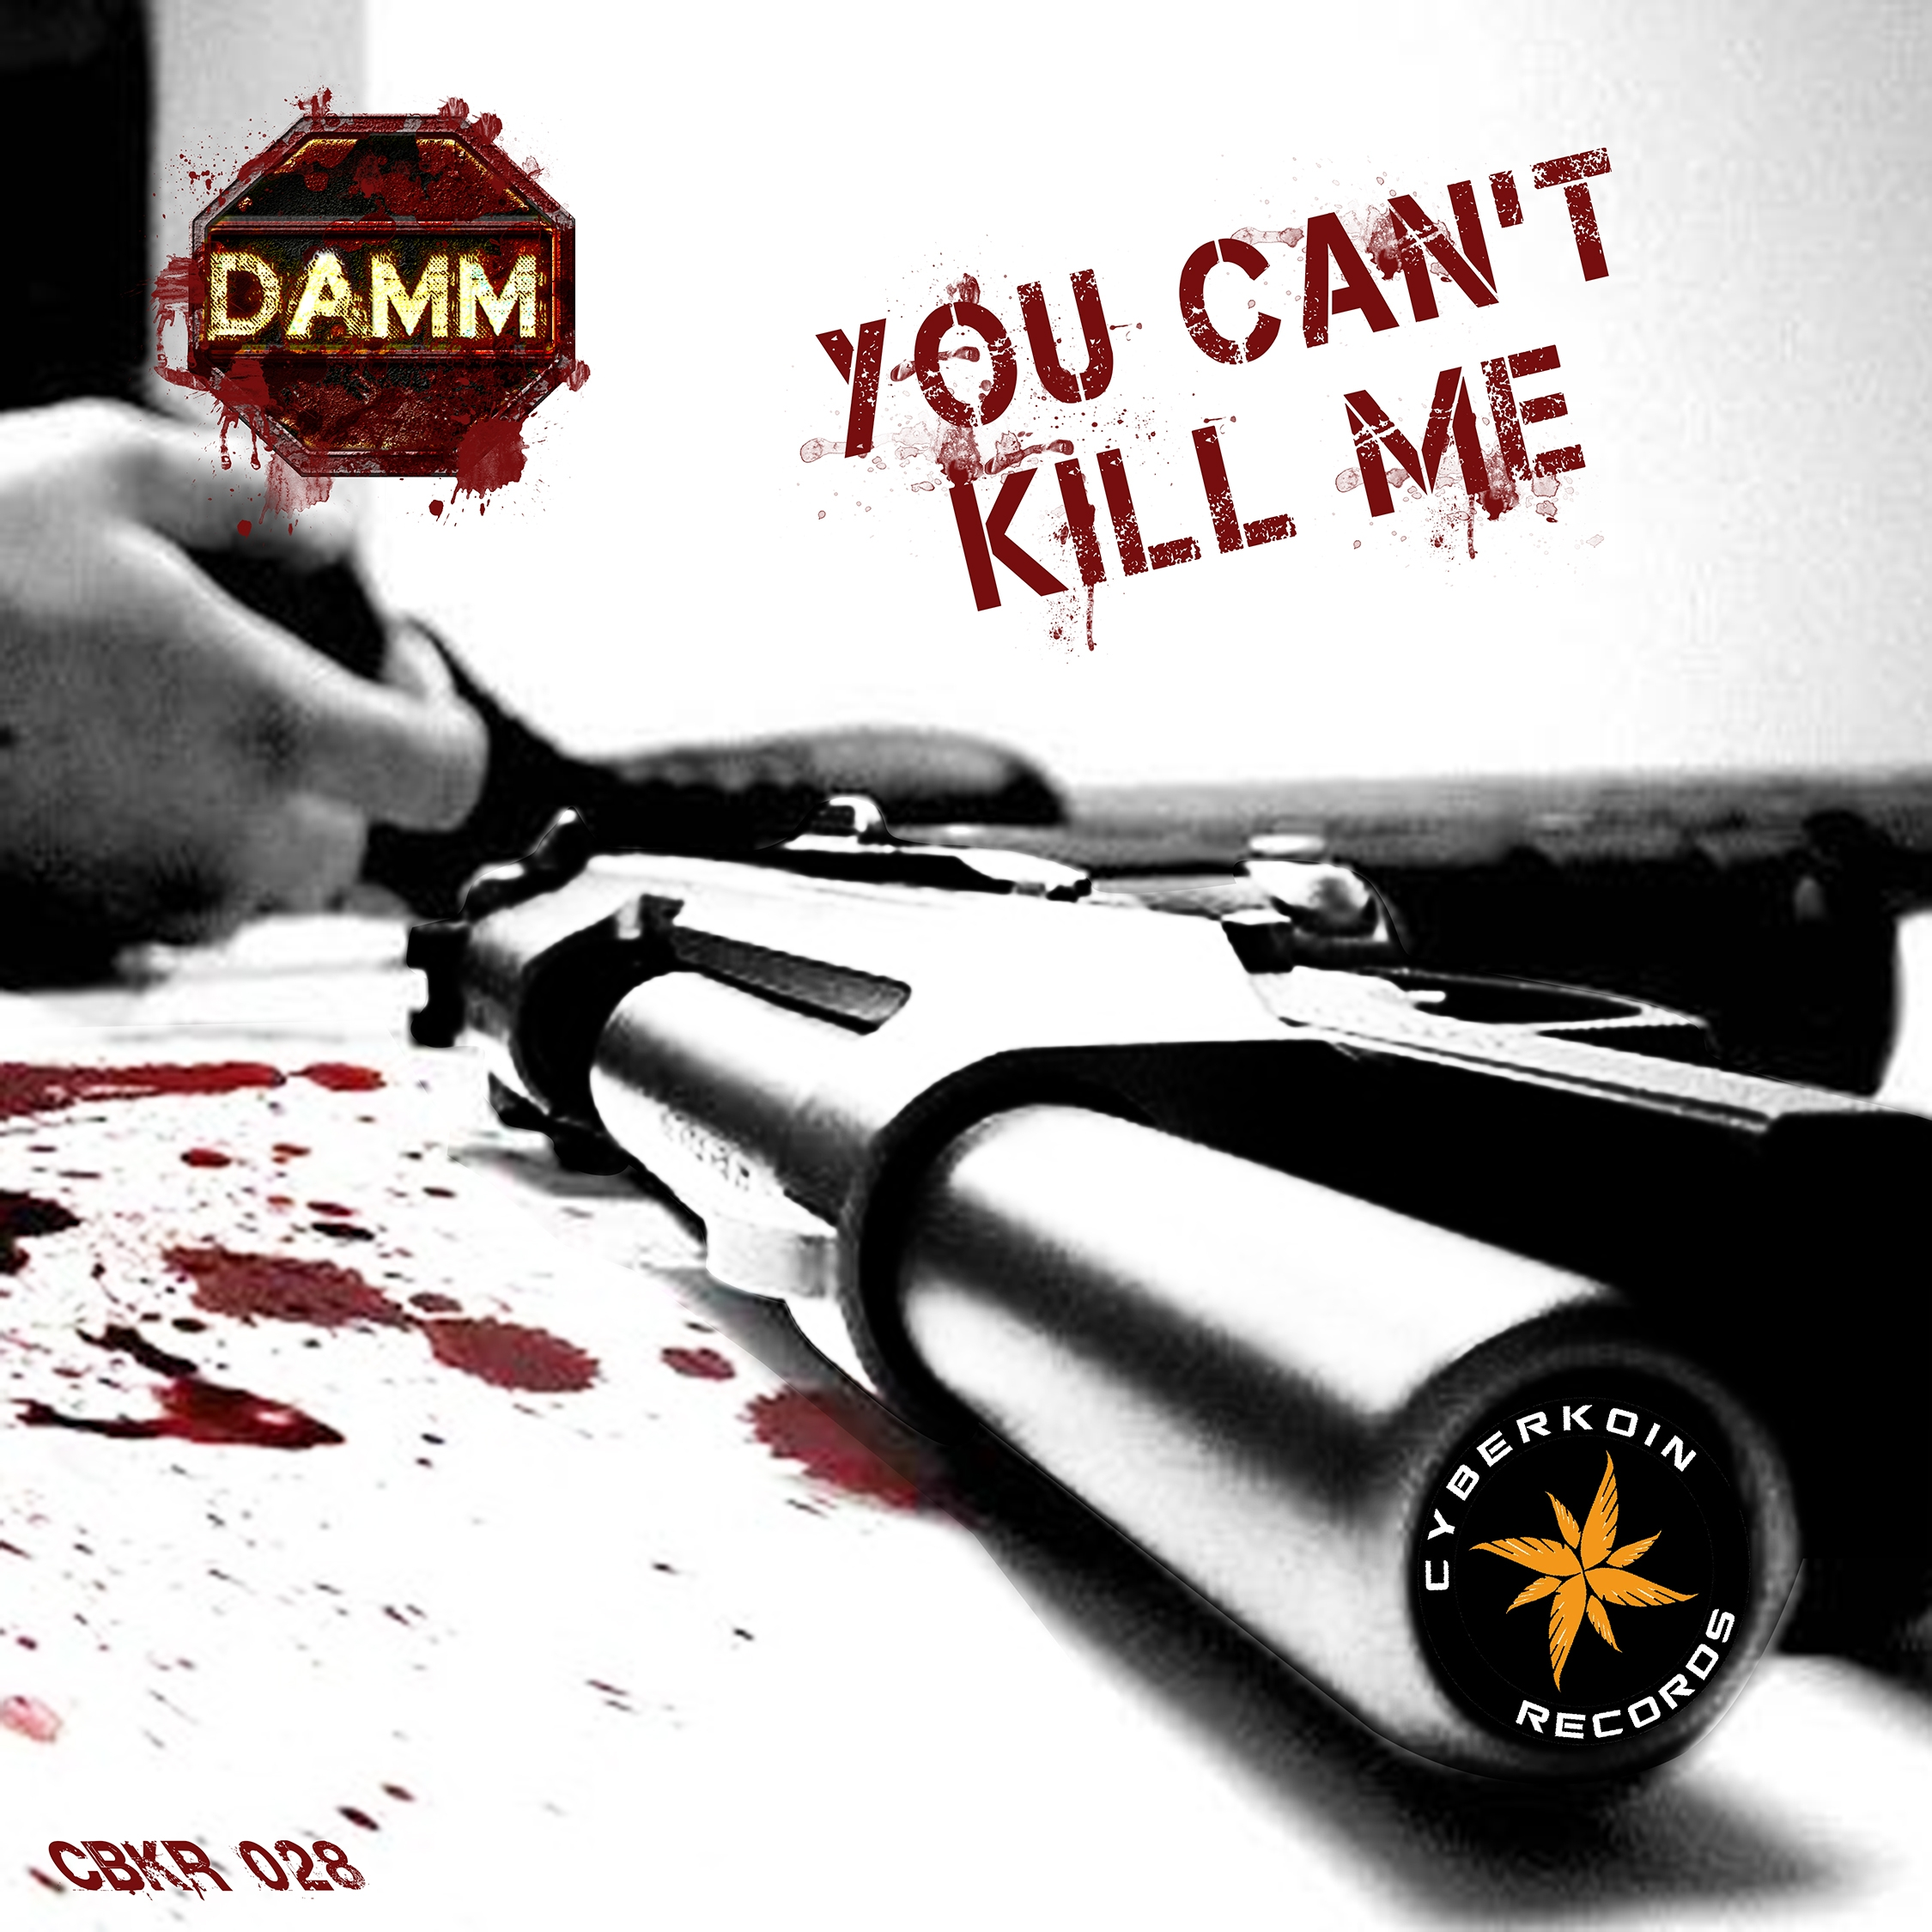 DaMM - You Can't Kill Me